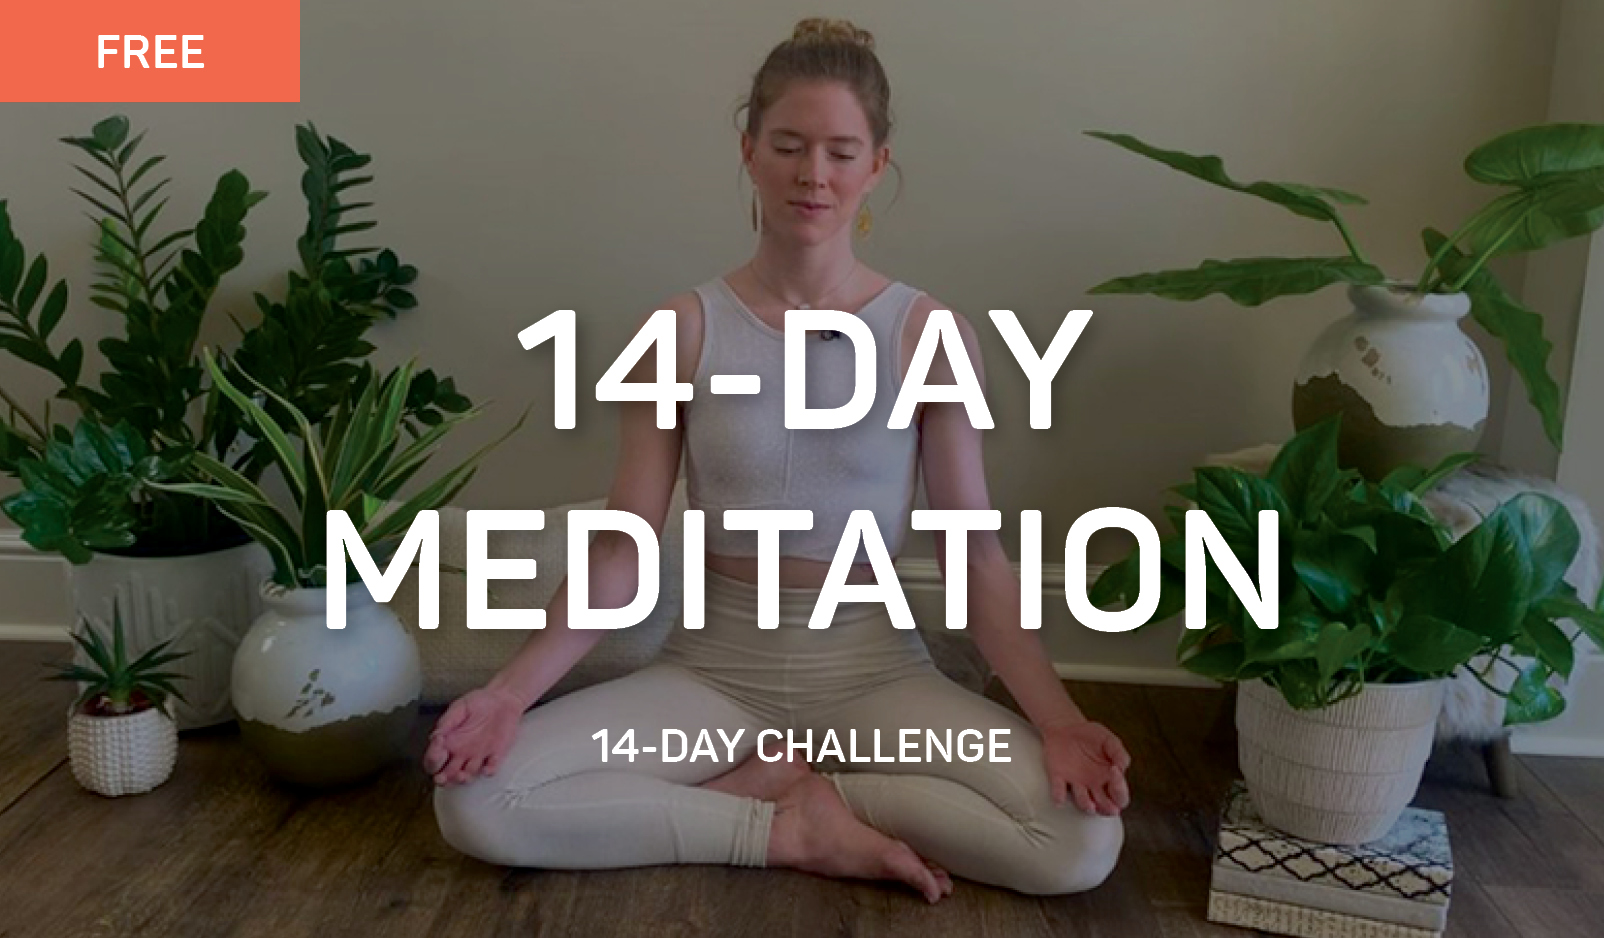 14-Day Meditation Fitness Challenge